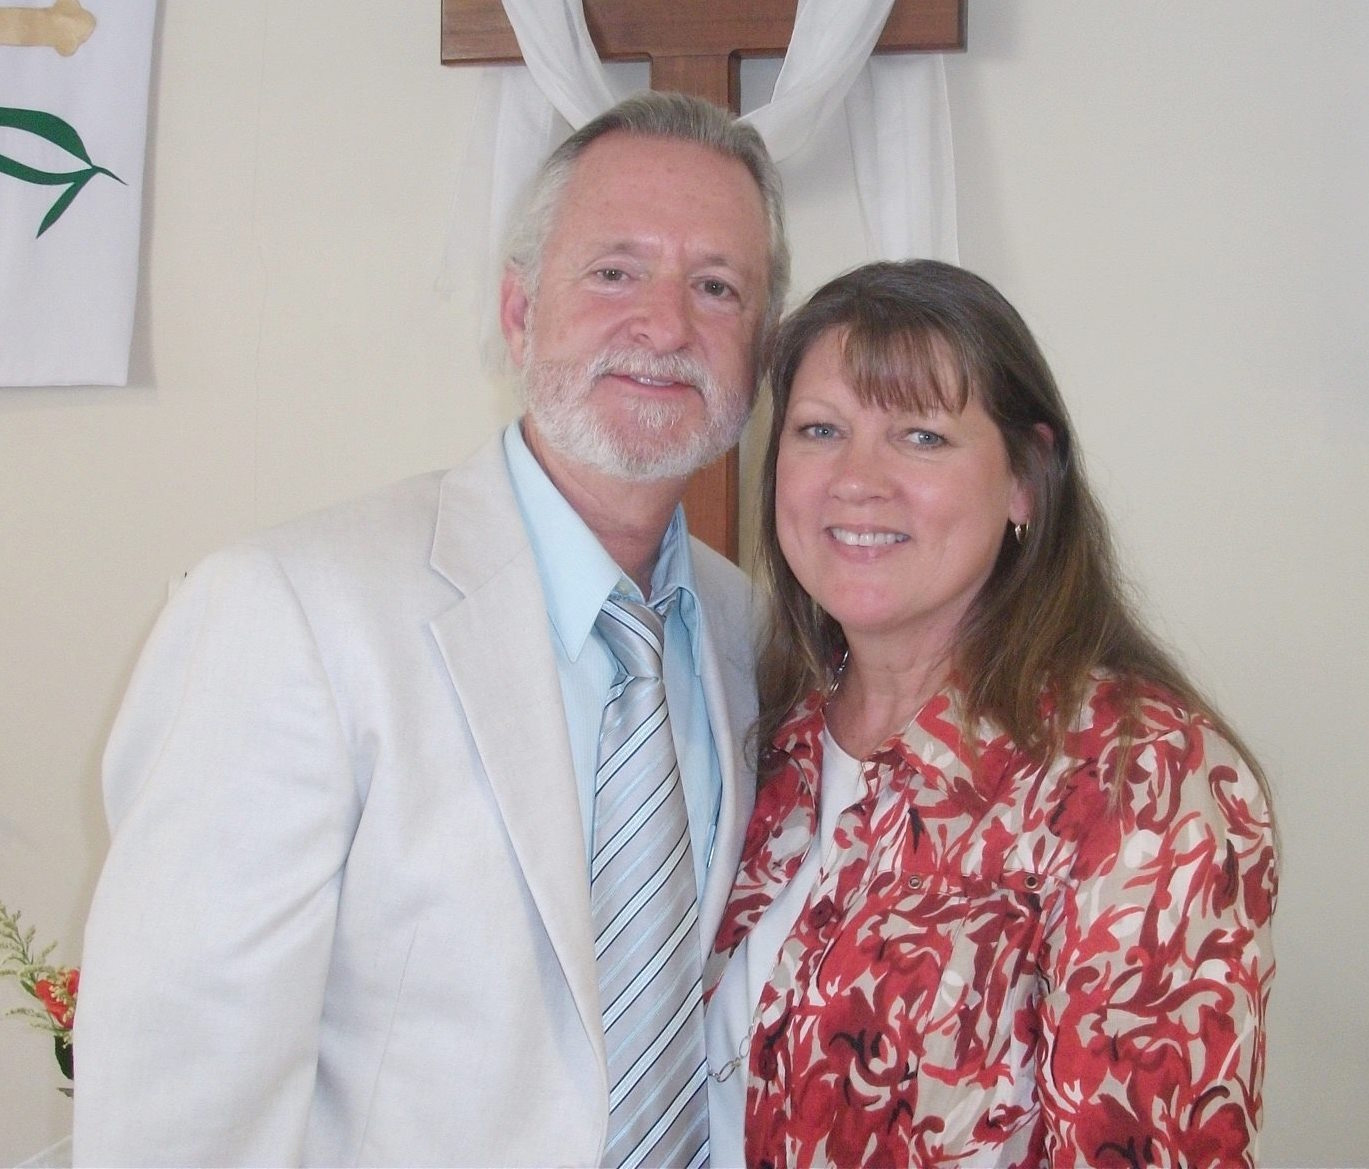 Dan Godwin and his wife Lisa serve through the United Methodist Church Missions Organization in Ecuador. This picture of them was taken at the International Christian Community in Cuenca, Ecuador to learn more,  click here  to read his missionary profile.